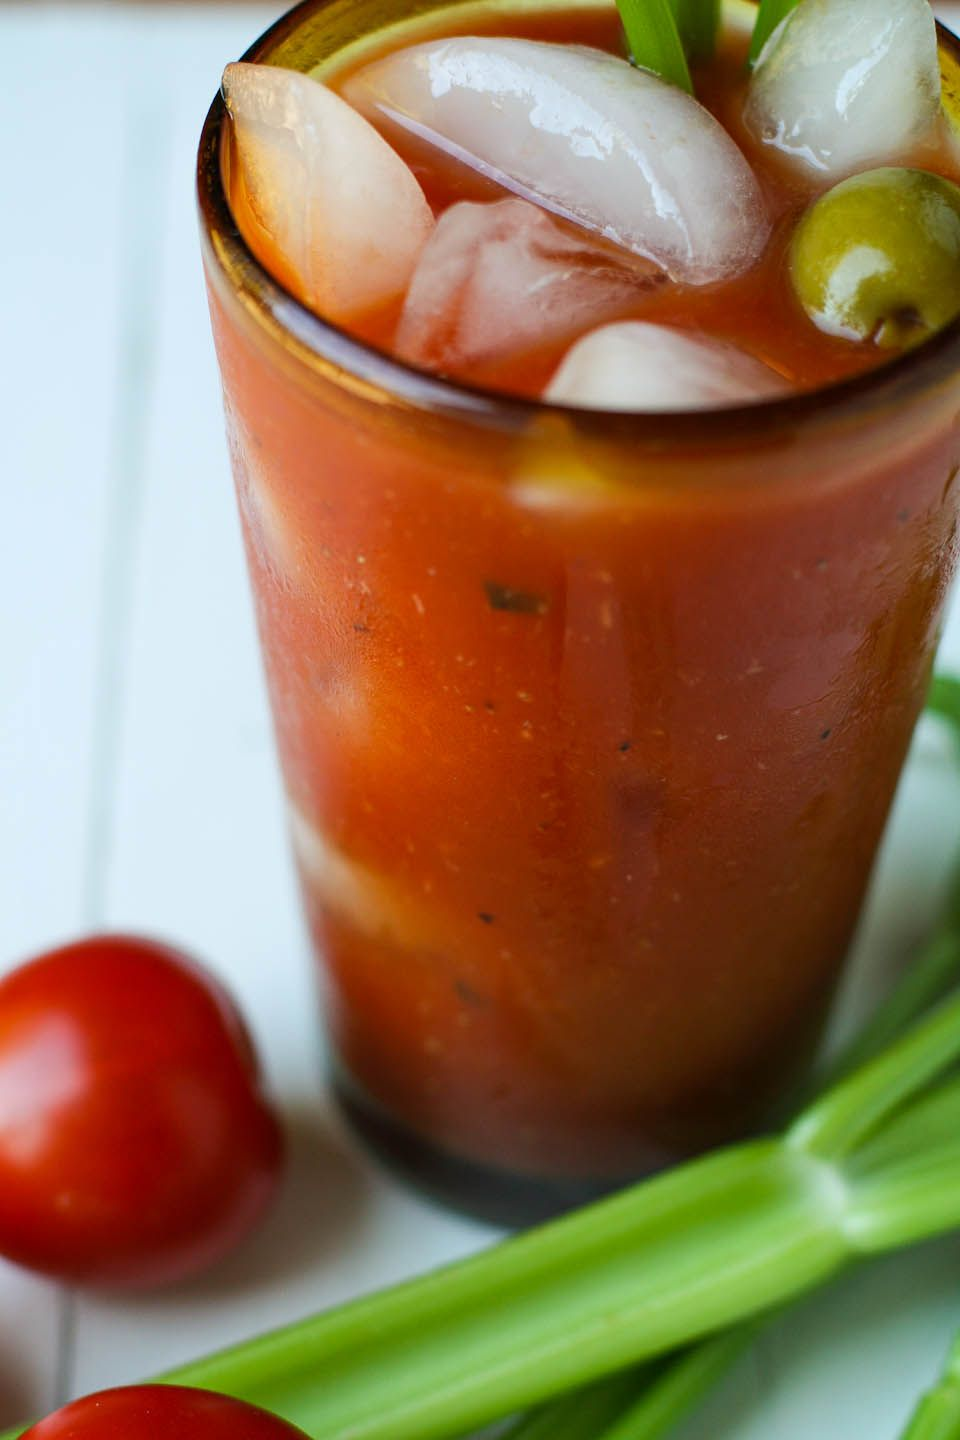 Never really knew what ratio of ingredients I should put in a Bloody Mary. Now I do! Stirred furiously instead of using a mixer. Did not bother with olives. Will do again.